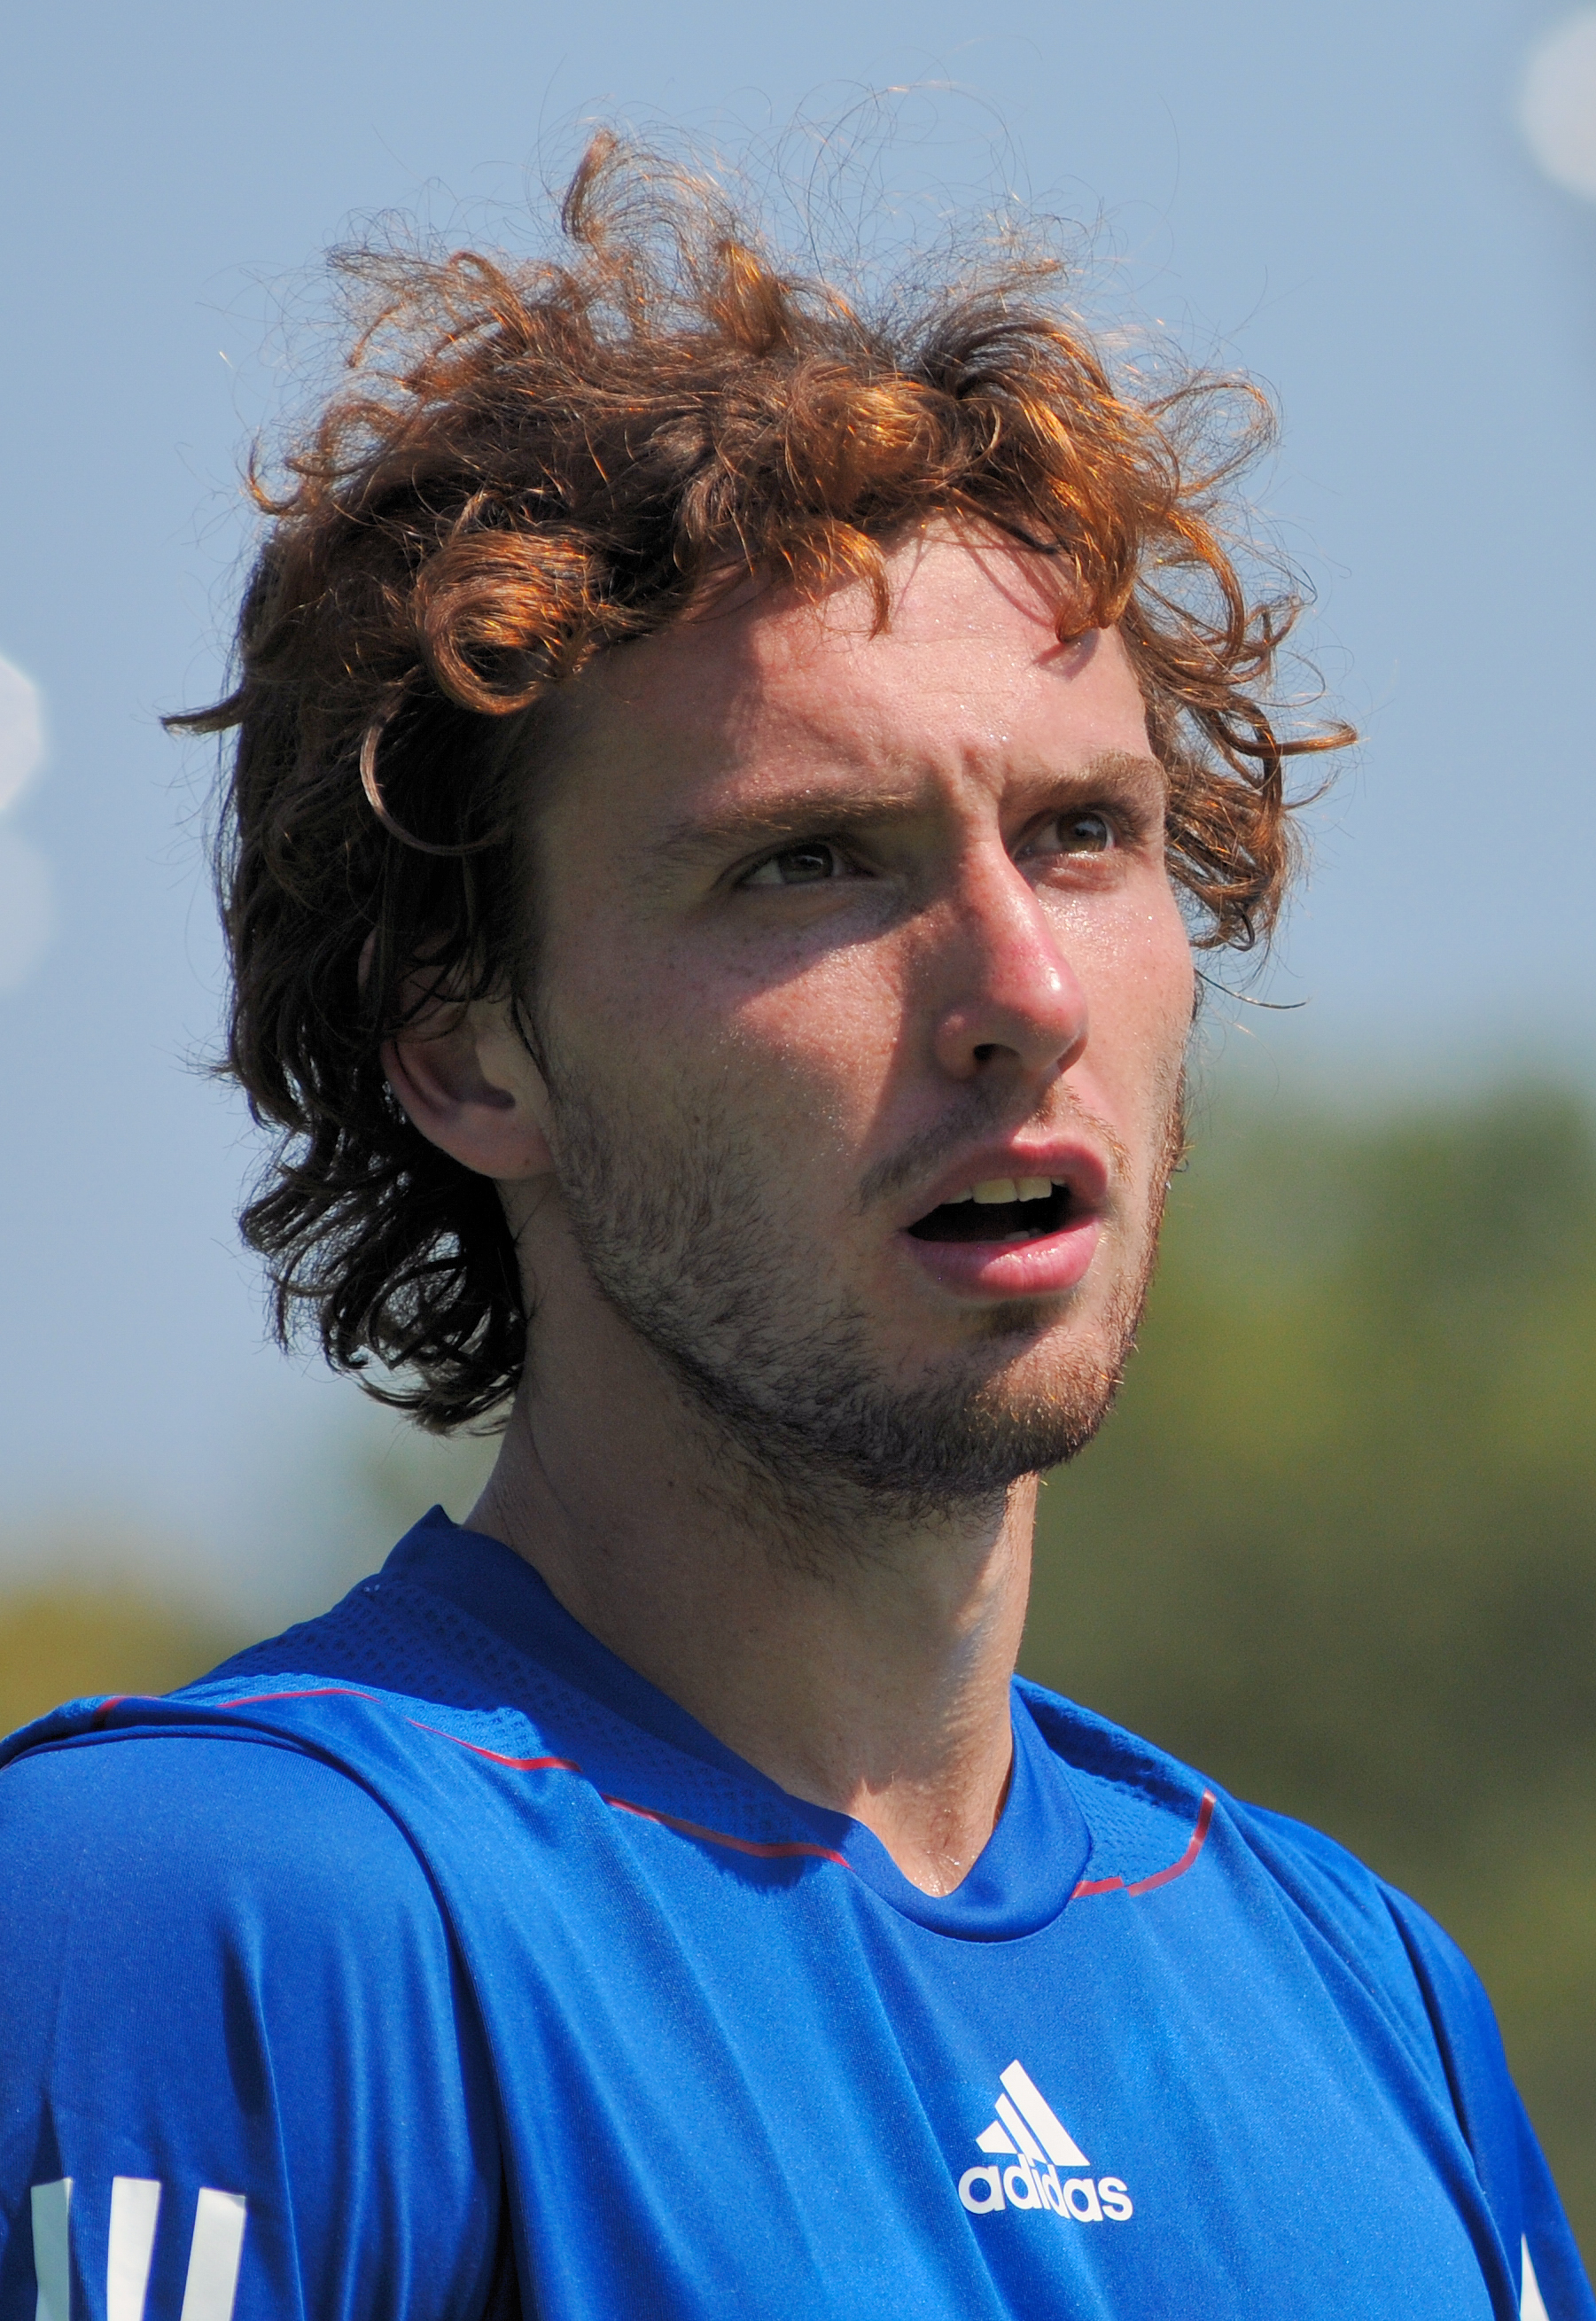 The 28-year old son of father Ainārs Gulbis  and mother Milena Gulbe, 190 cm tall Ernests Gulbis in 2017 photo